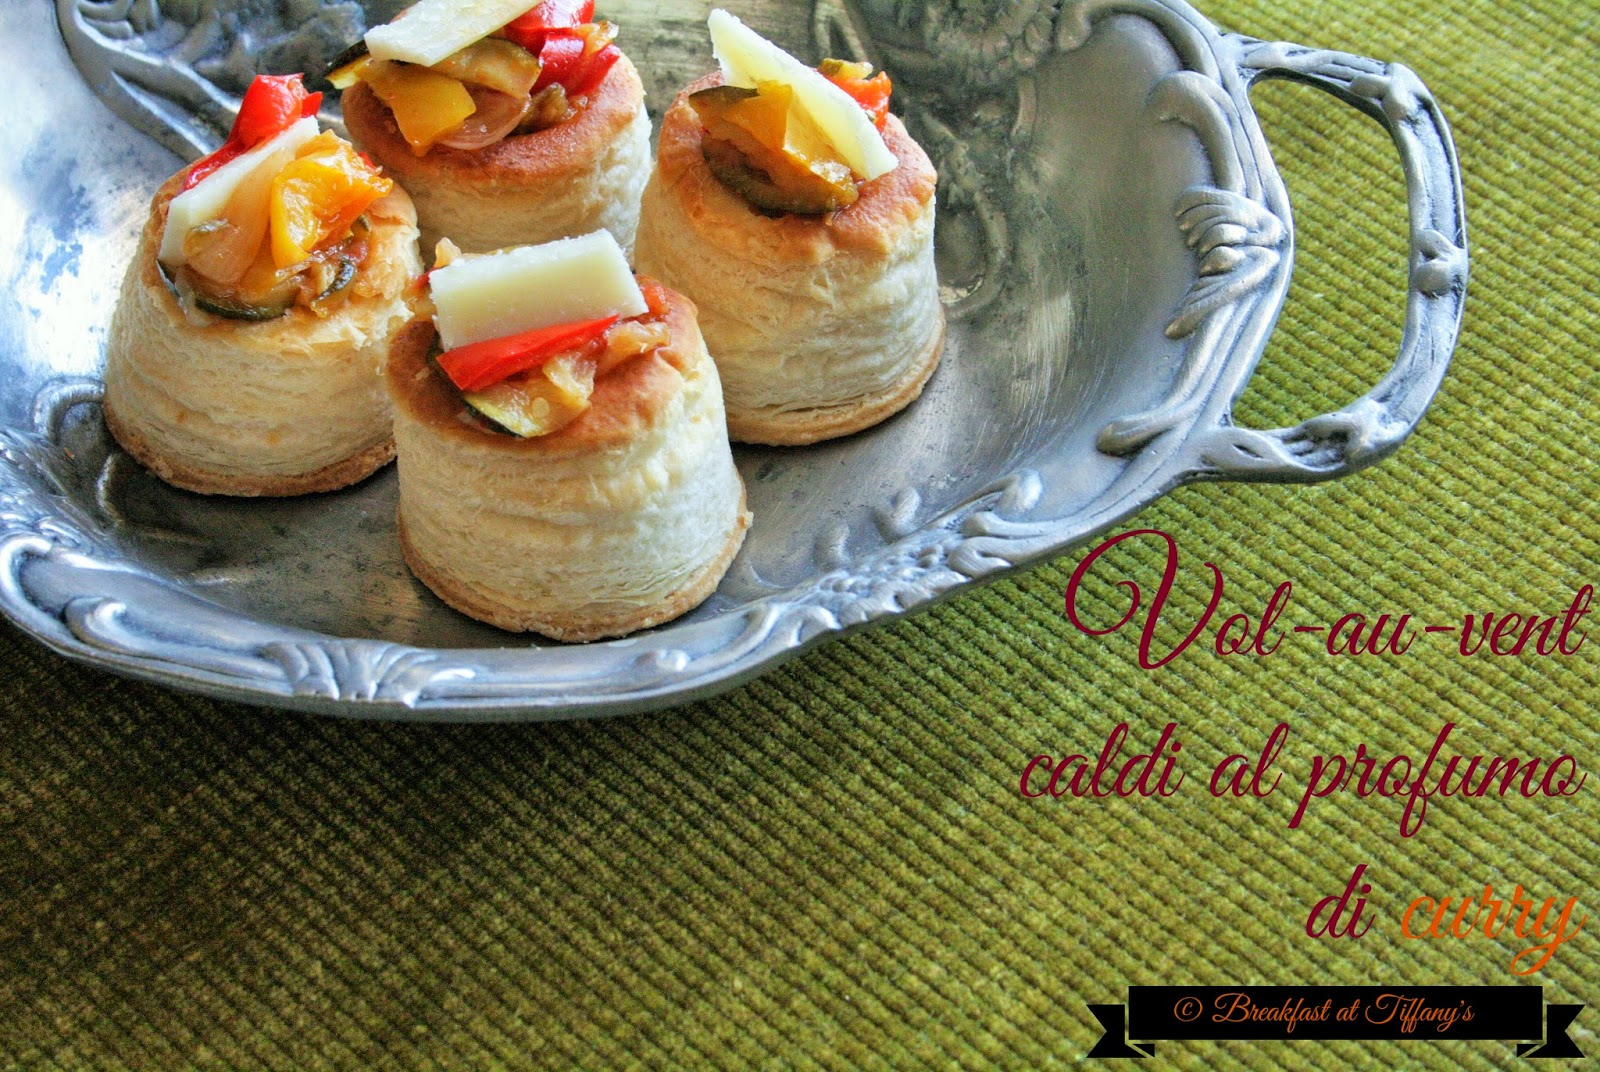 vol-au-vent caldi al profumo di curry / hot puff pastry shells with curry spice